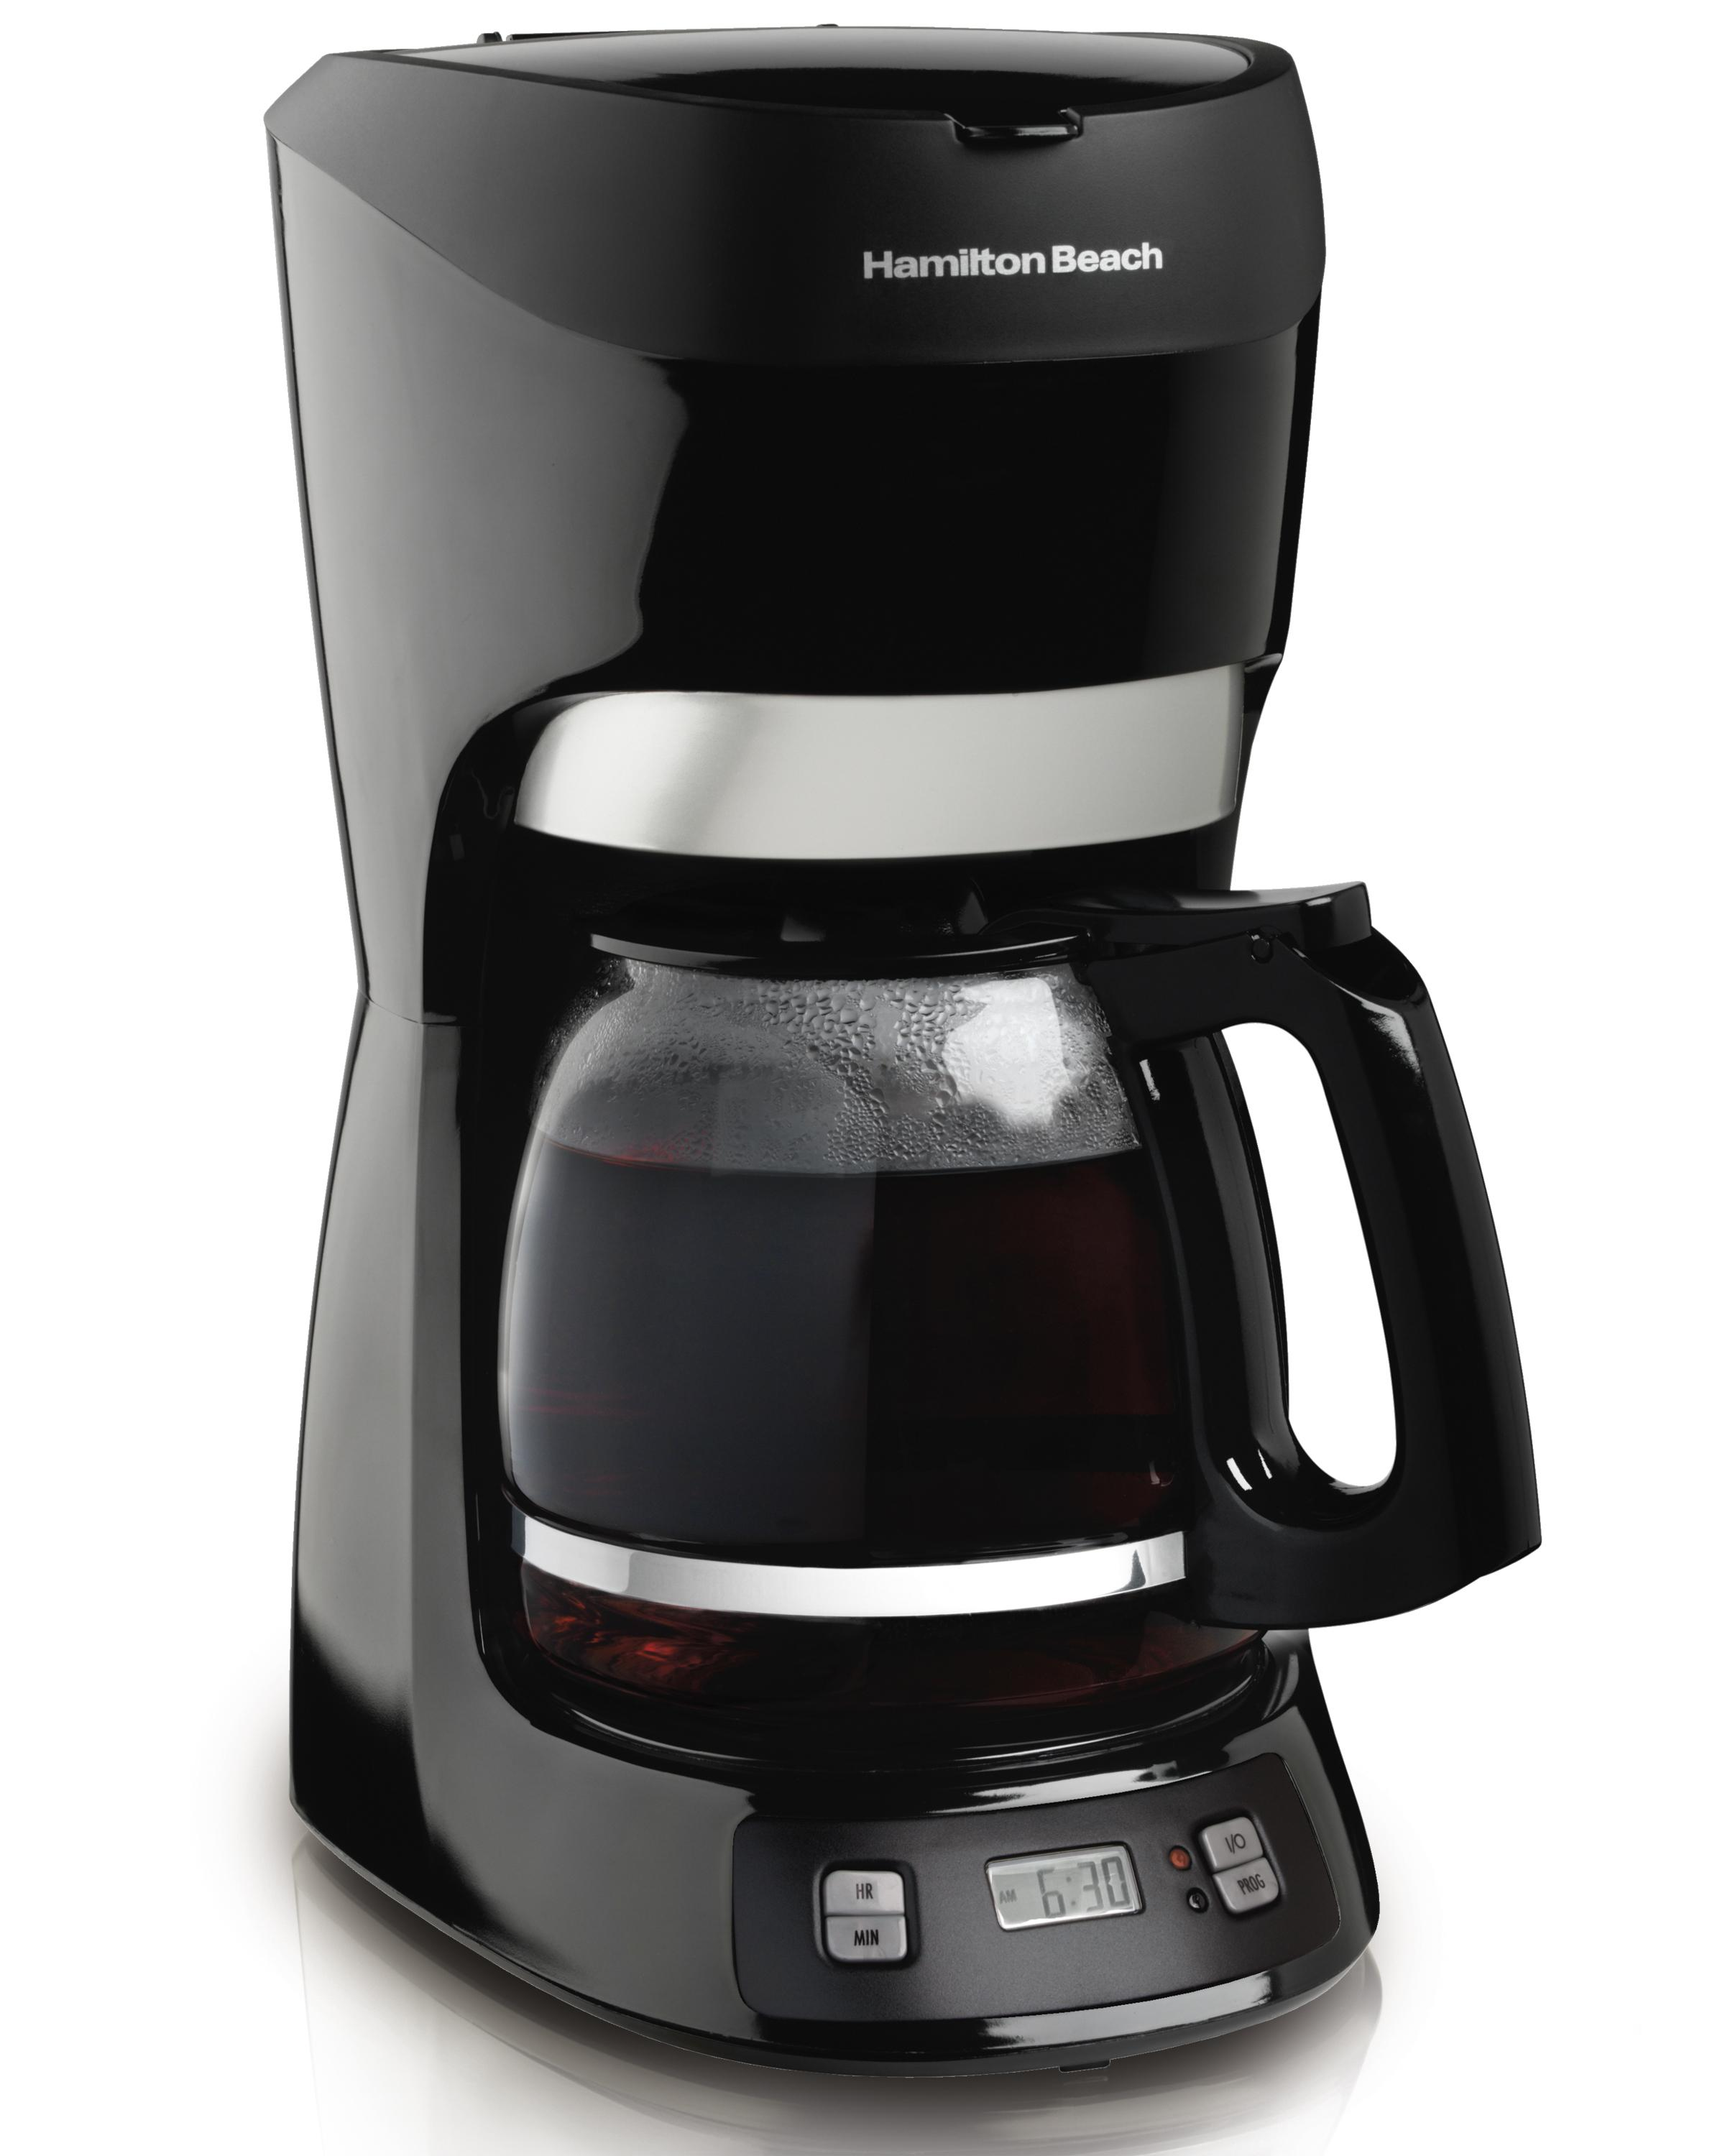 Amazoncom Hamilton Beach Cup Coffee Maker With Digital Clock - 5 most unique coffee shops in hamilton on